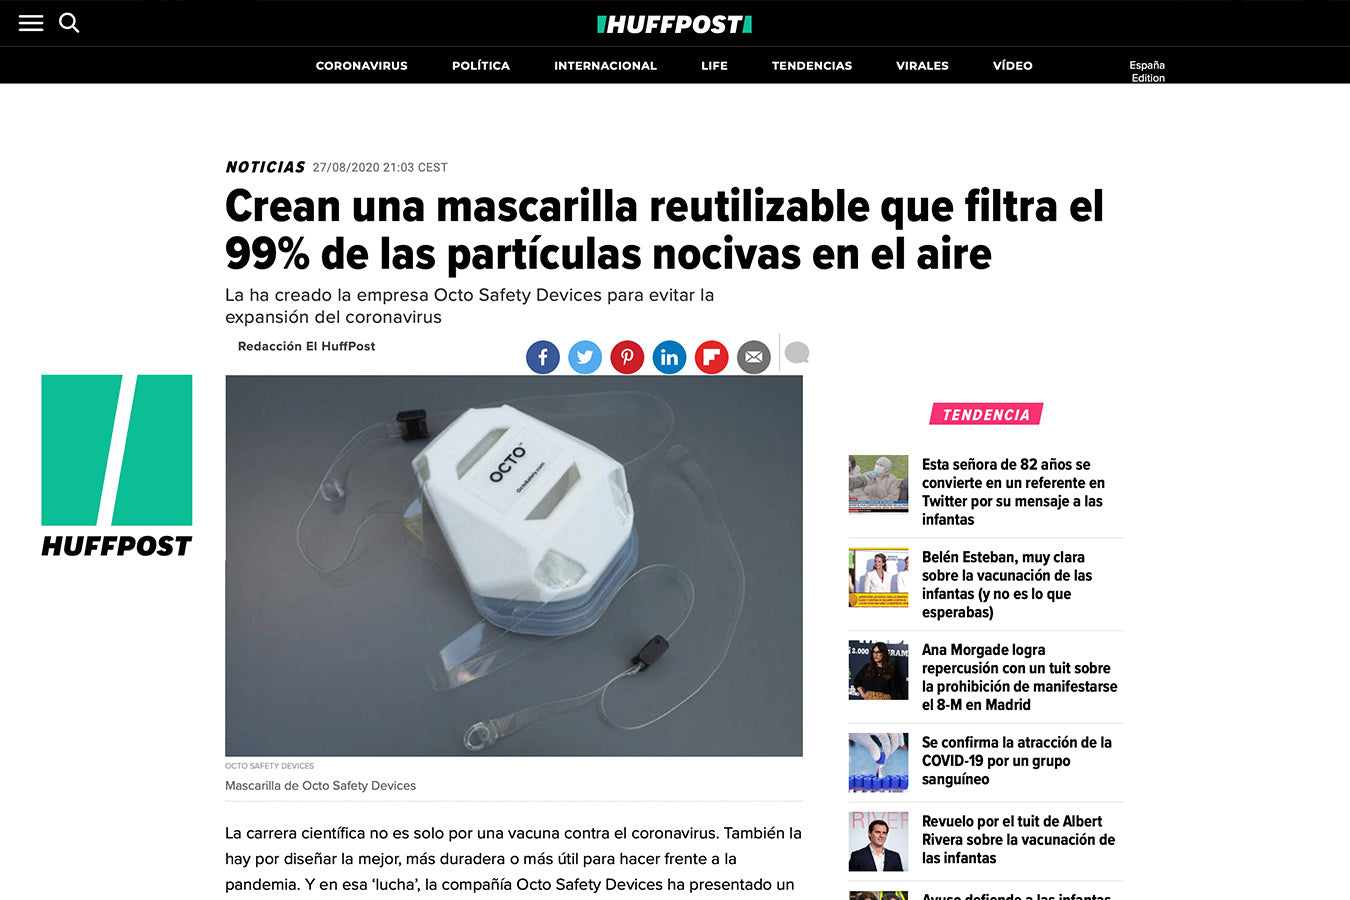 OCTO Respirator Mask Featured in Spanish-Language Media